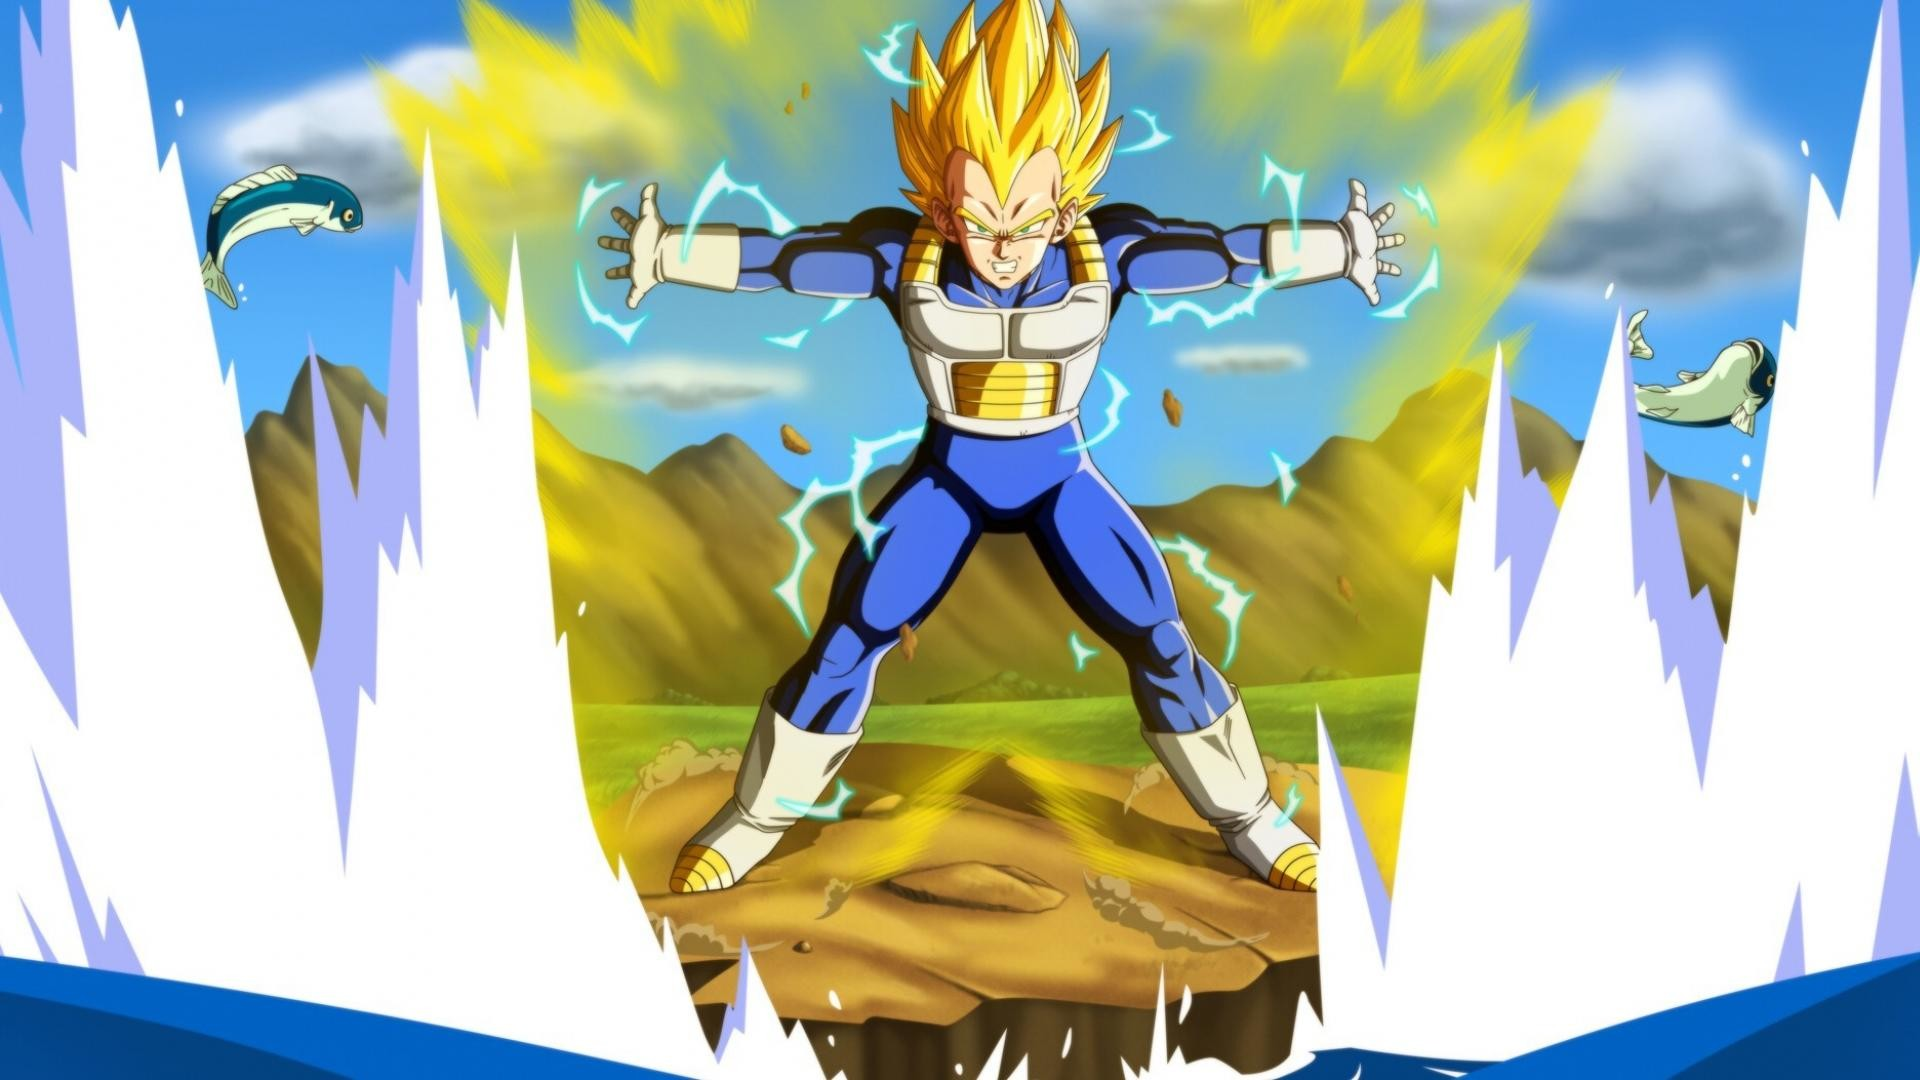 Dragonball Z Wallpaper Vegeta Posted By Ryan Thompson